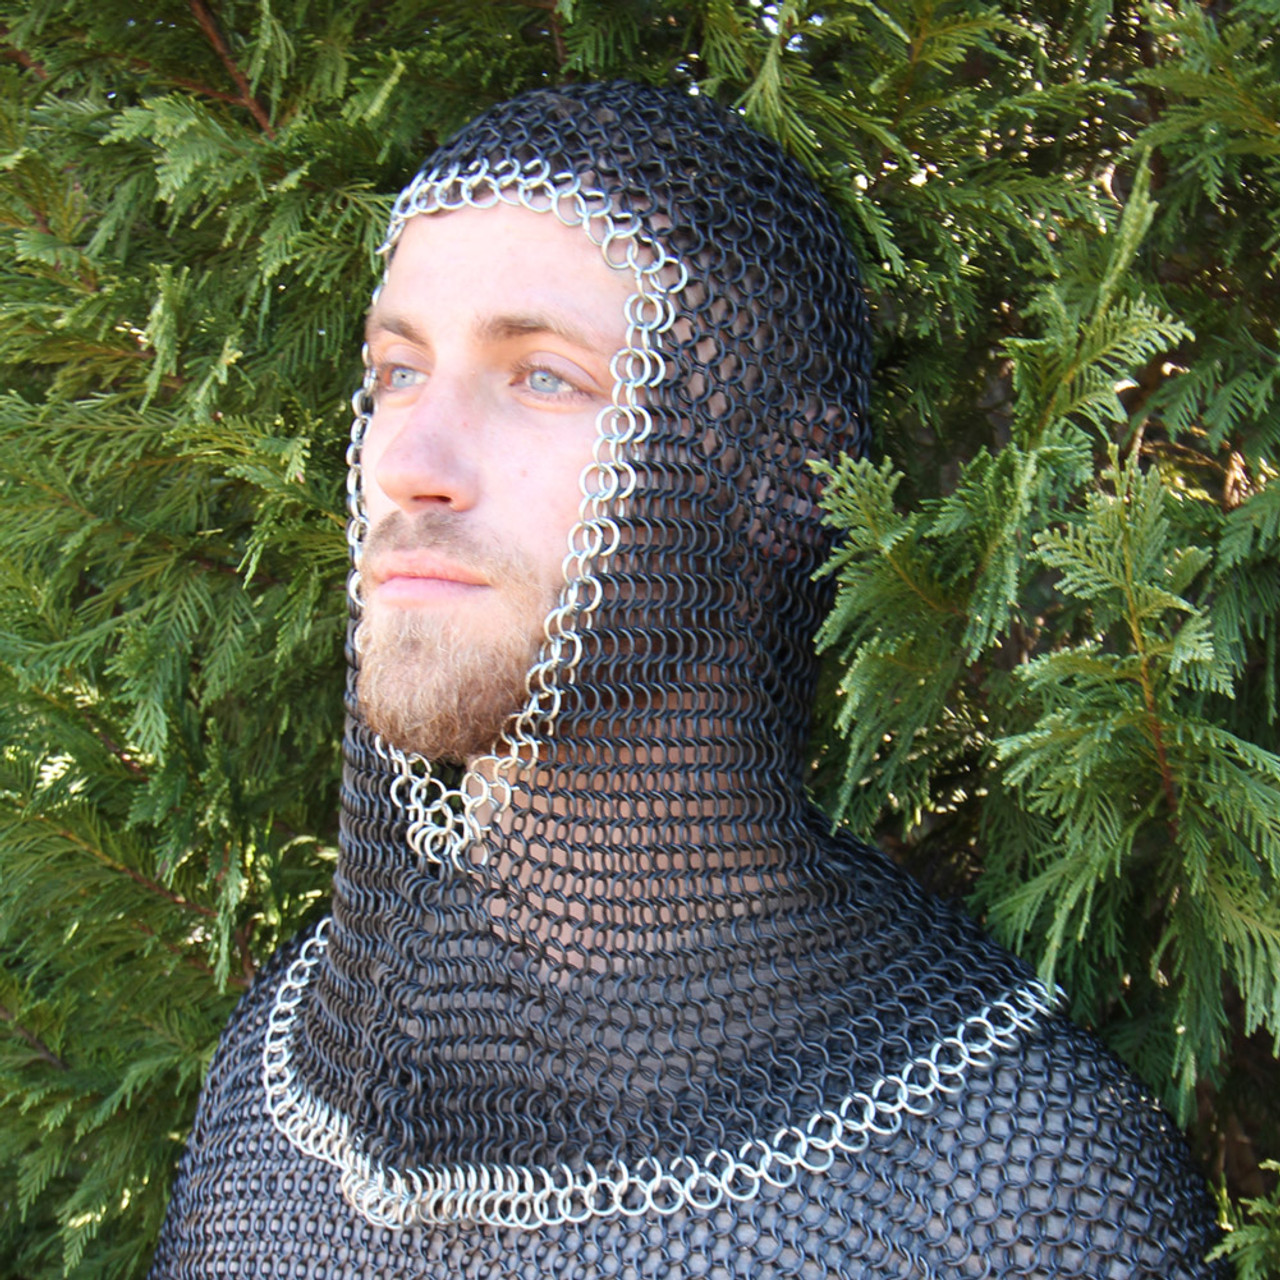 Medieval V Chainmail Coif